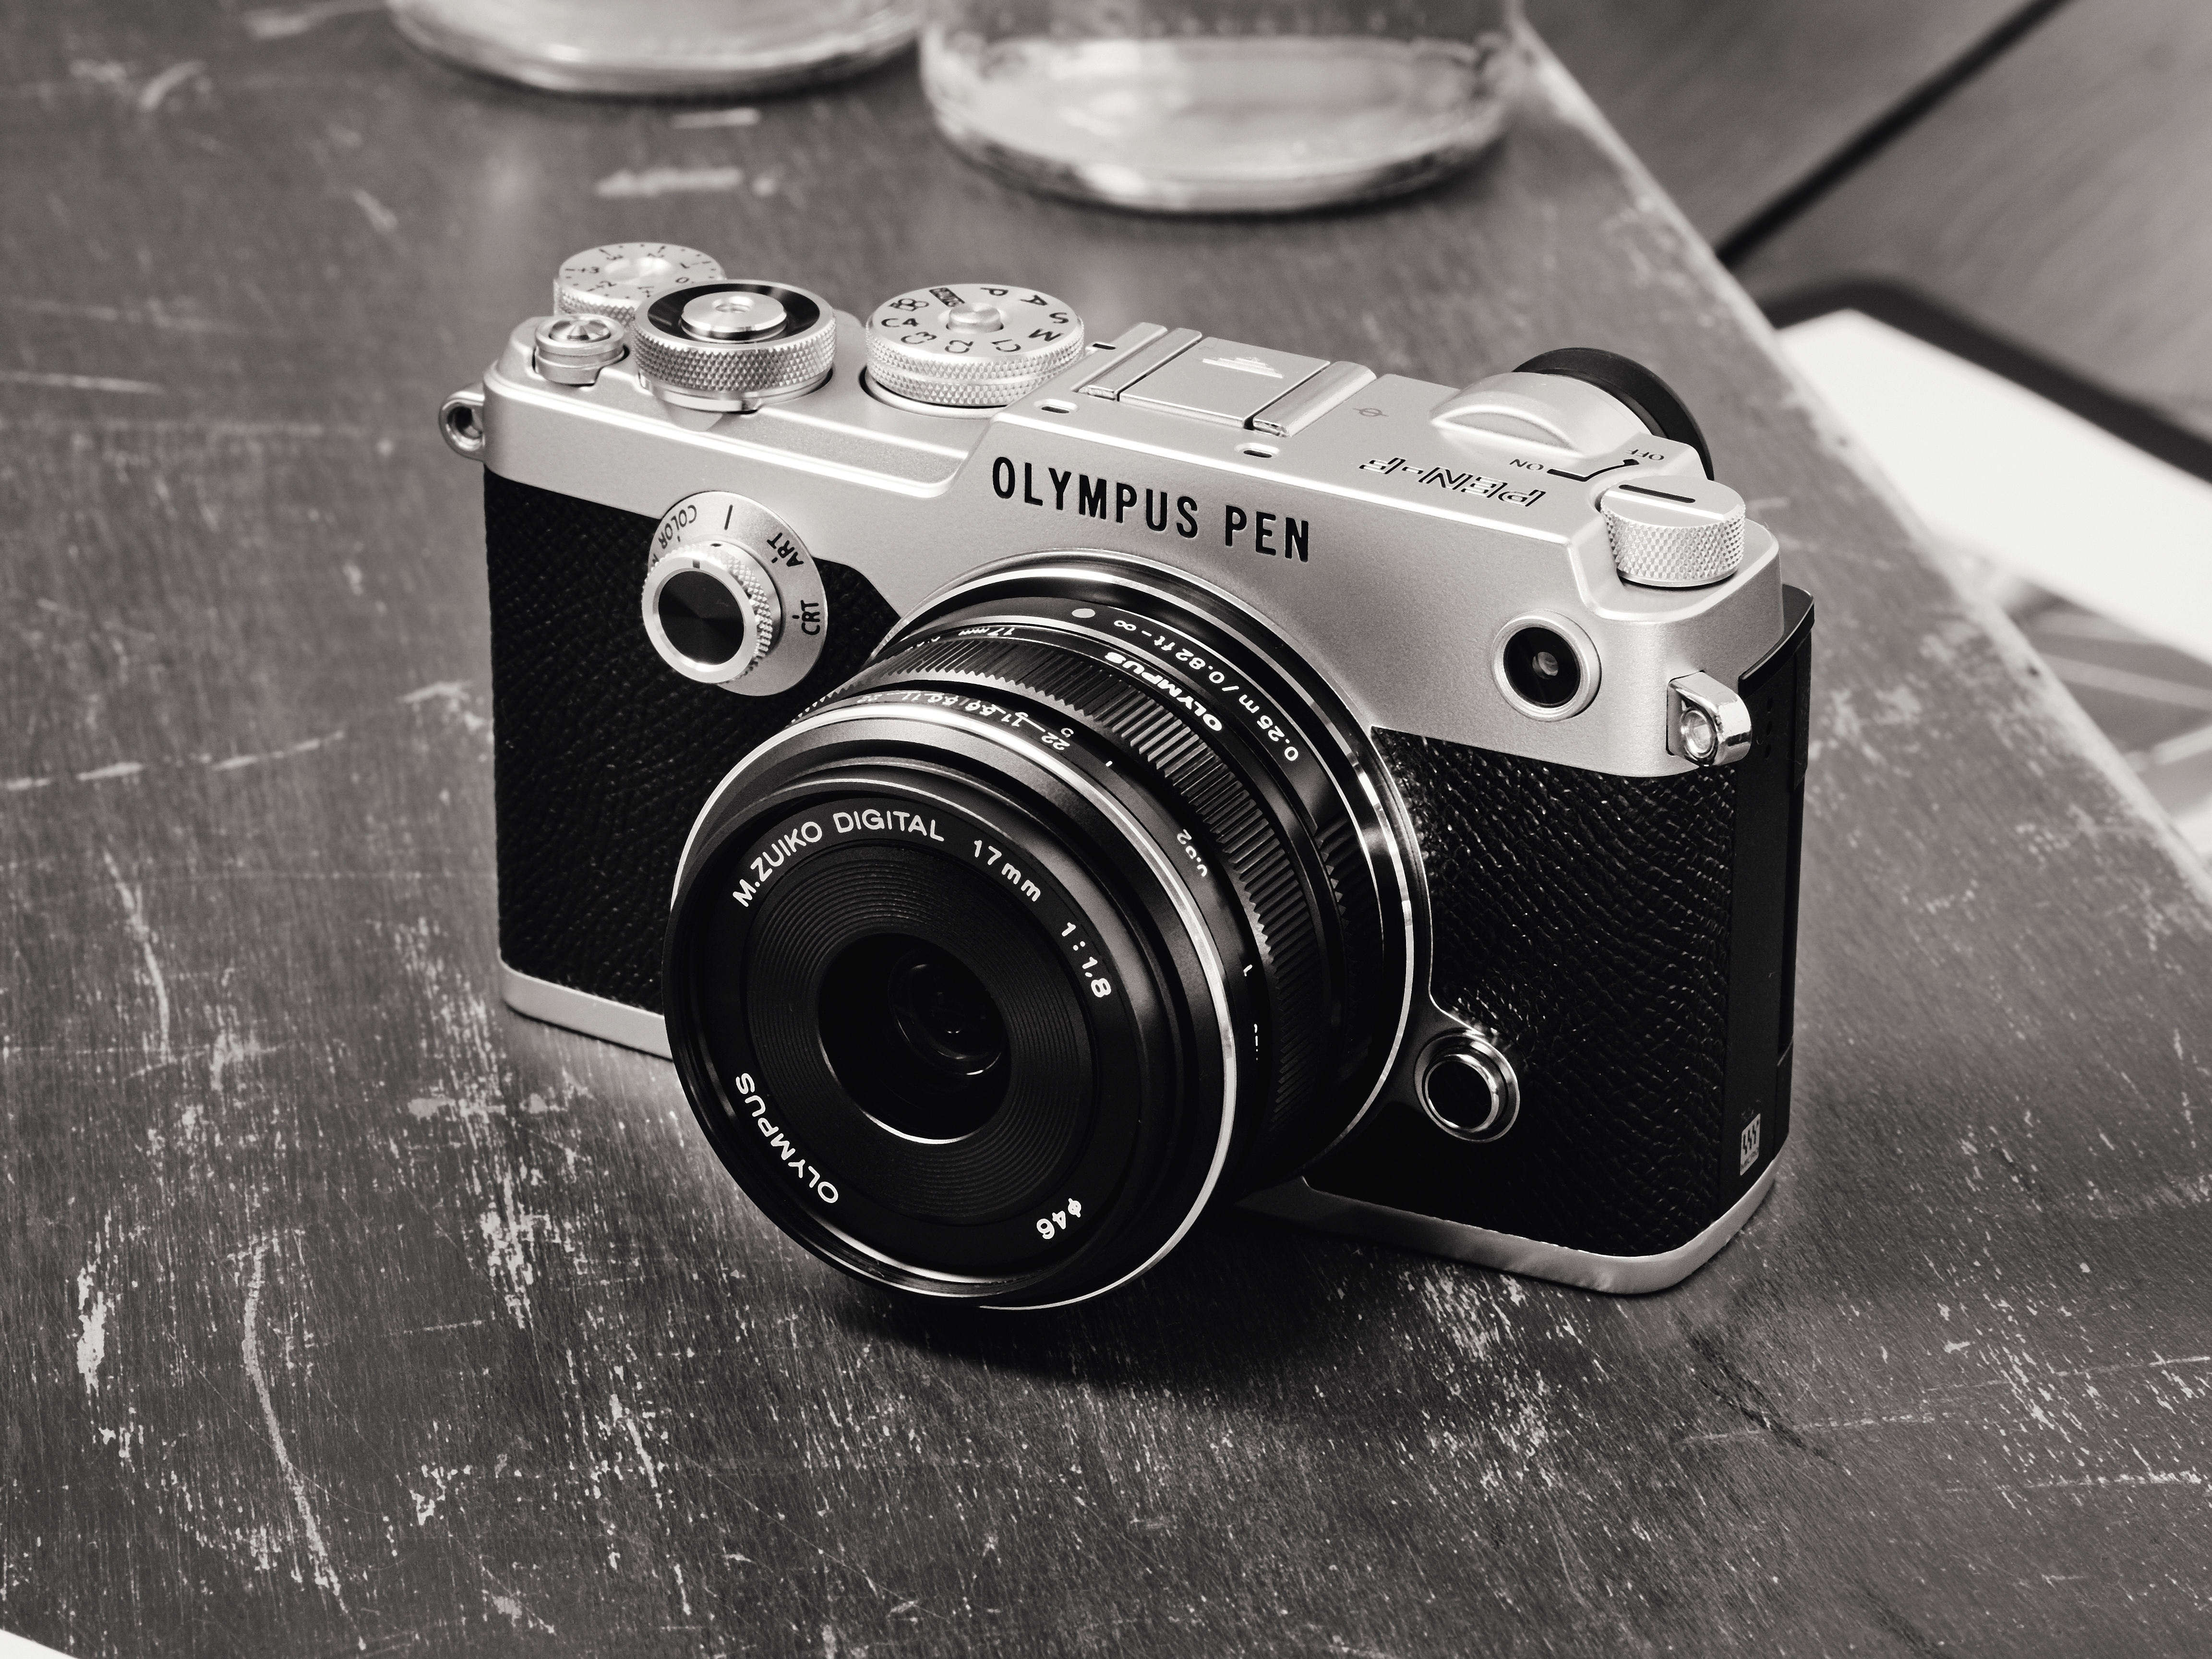 olympus pen f high end camera performance never looked or felt so